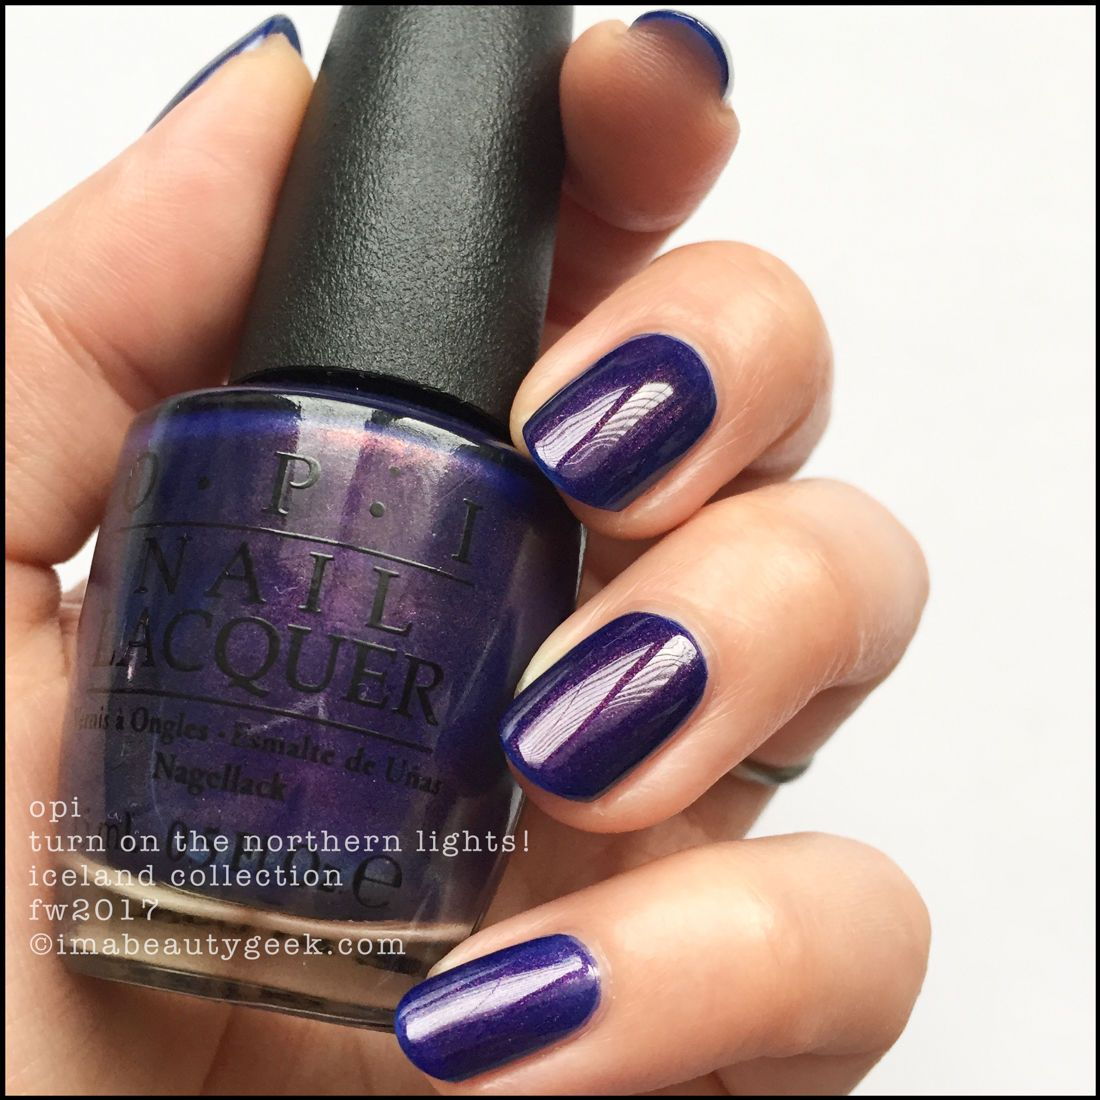 Opi Iceland Collection Swatches Amp Review Fw